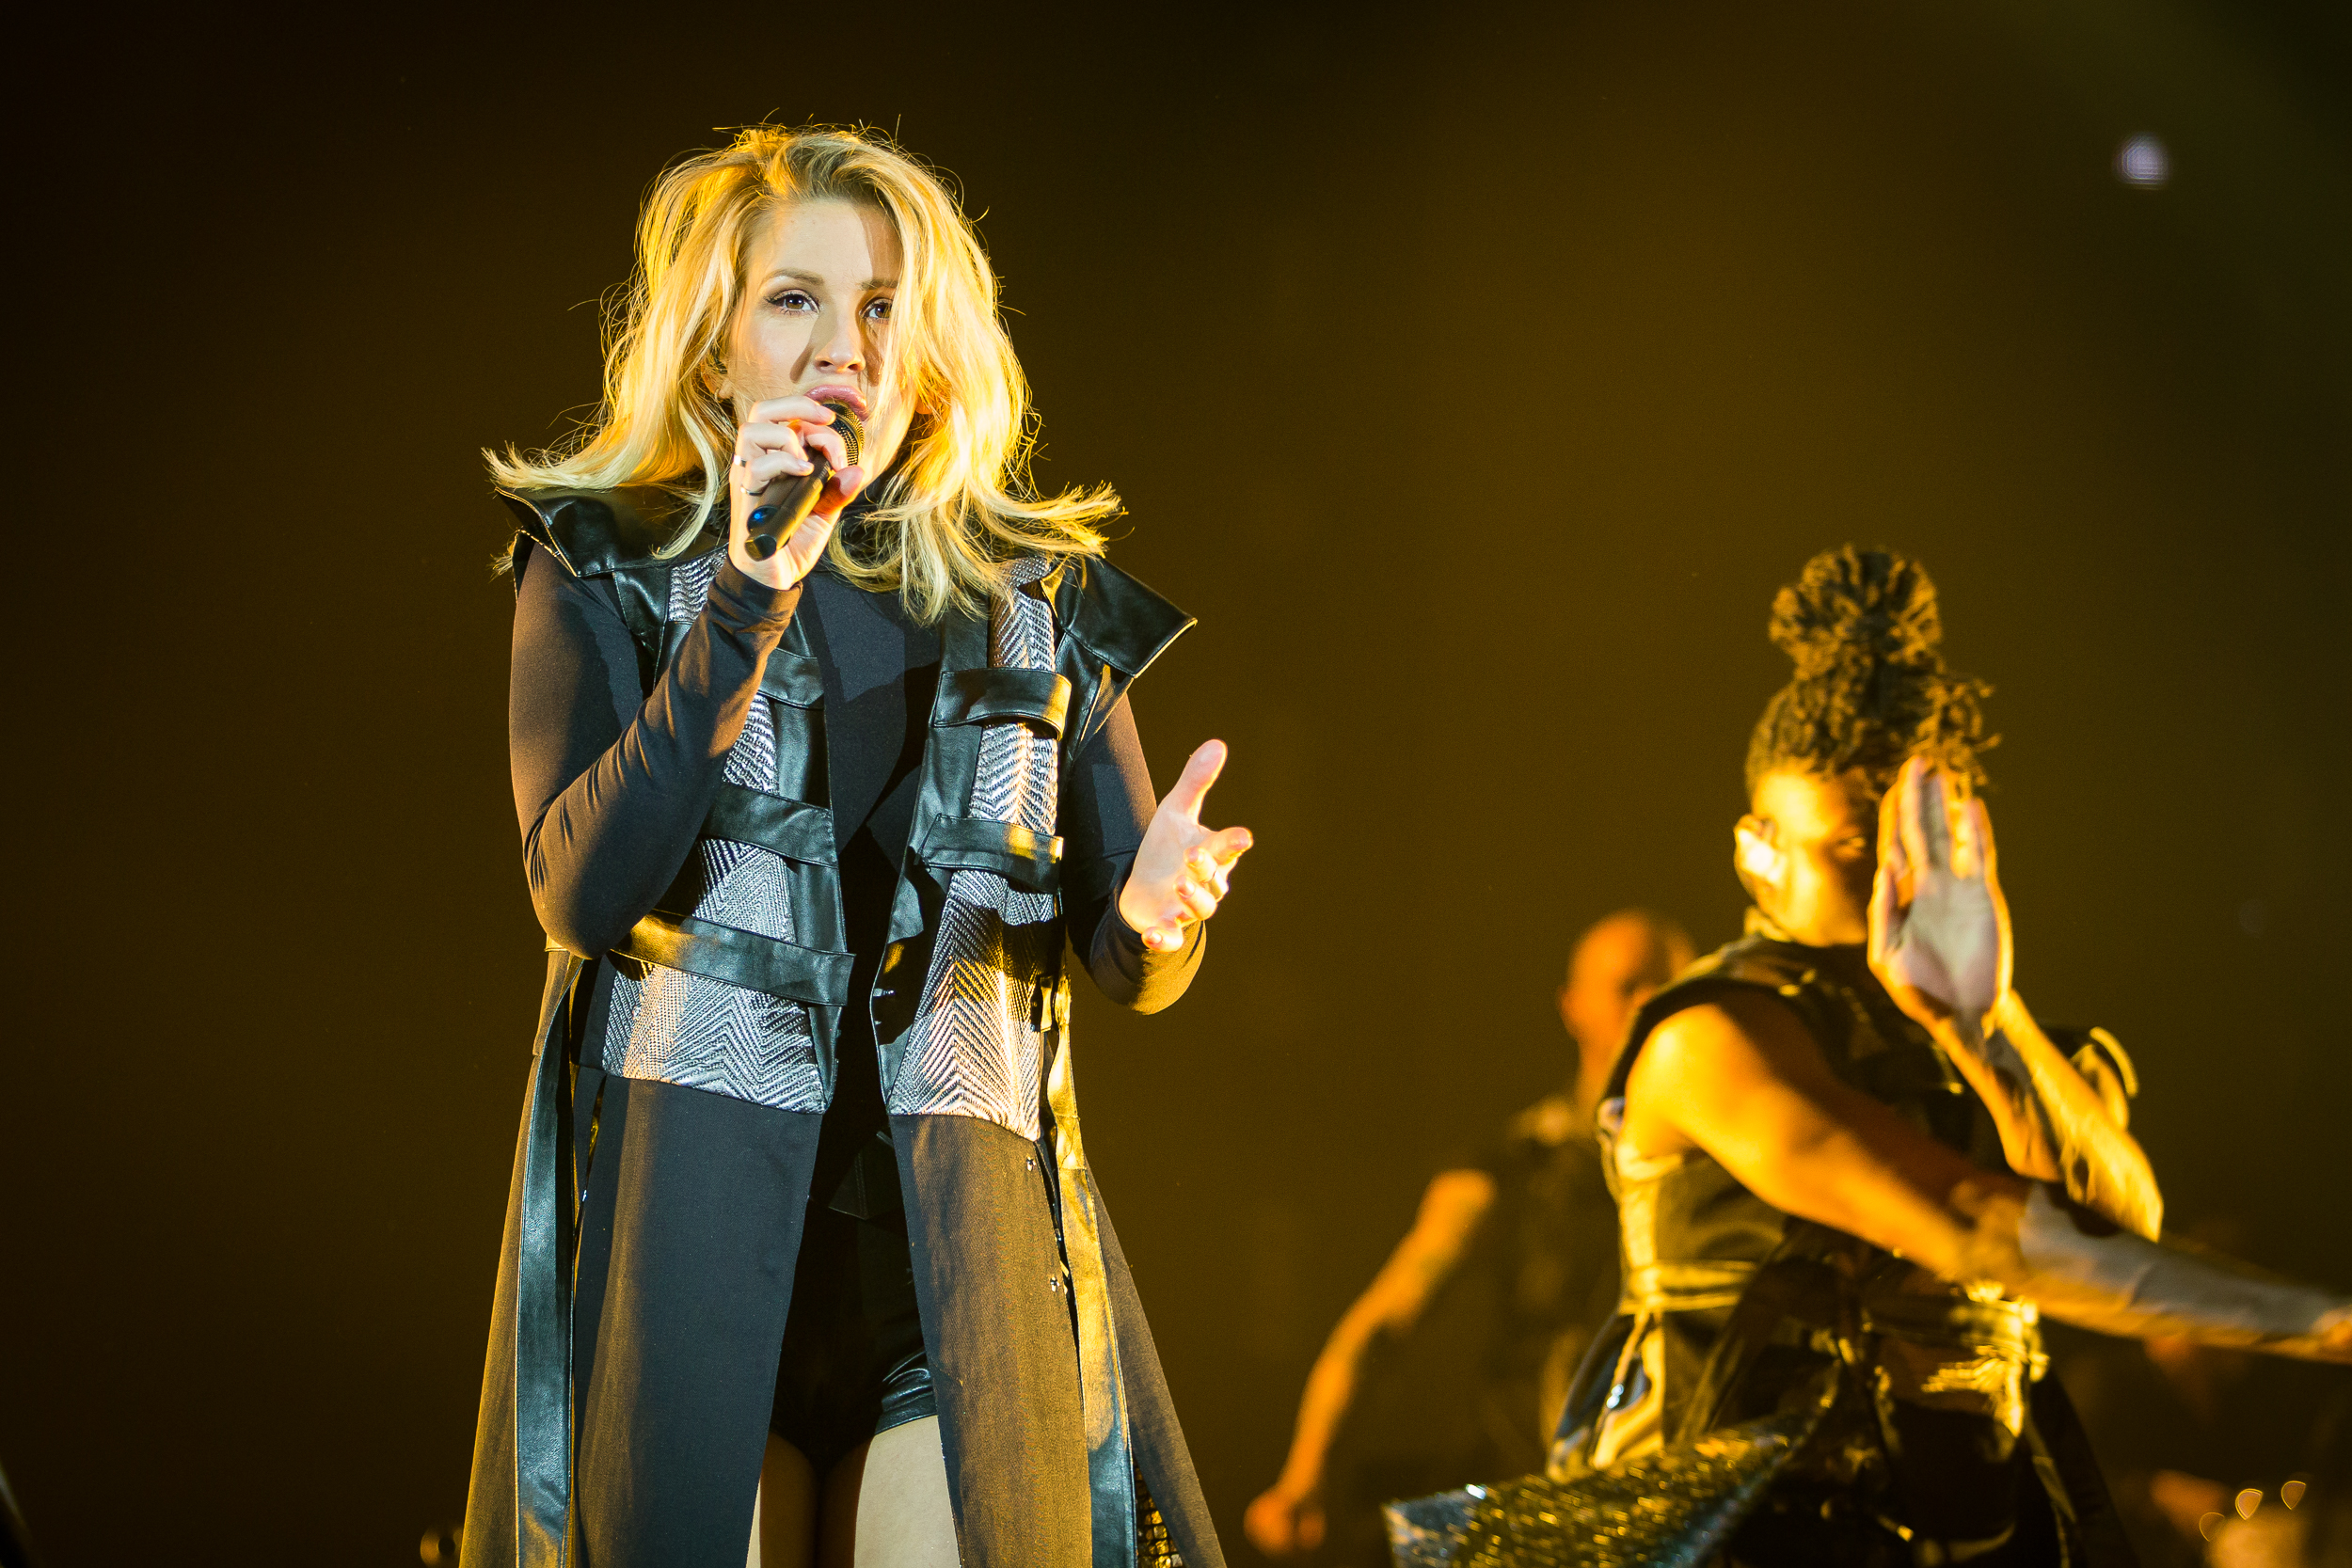 Ellie Goulding at Telenor Arena, Oslo